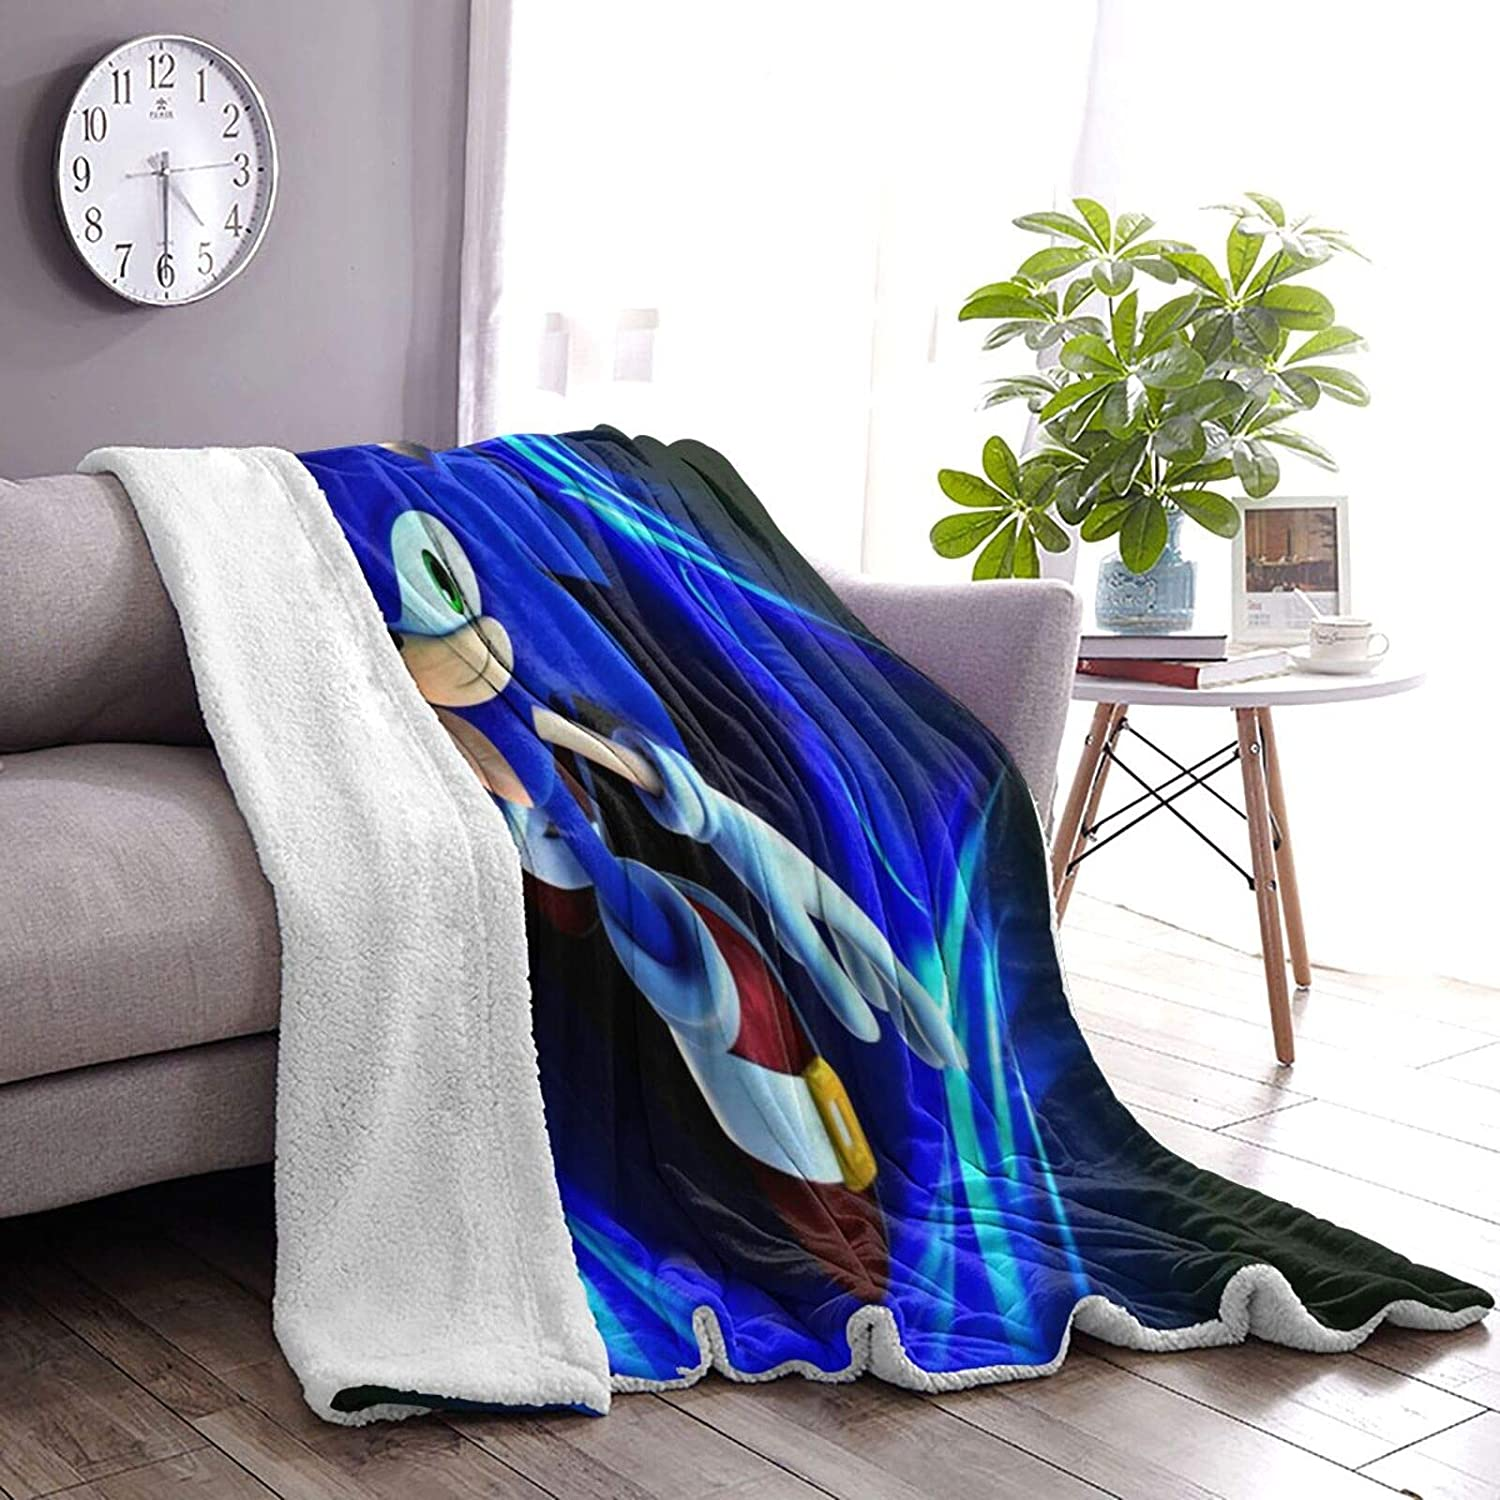 So-nic-The Hedgehog Warm Soft Blanket in Winter Lambswool Blanket Thickened Double Layer Double-Sided Throw Blanket for Kids Adults Gift Sofa Chair Bed Office 50 x40